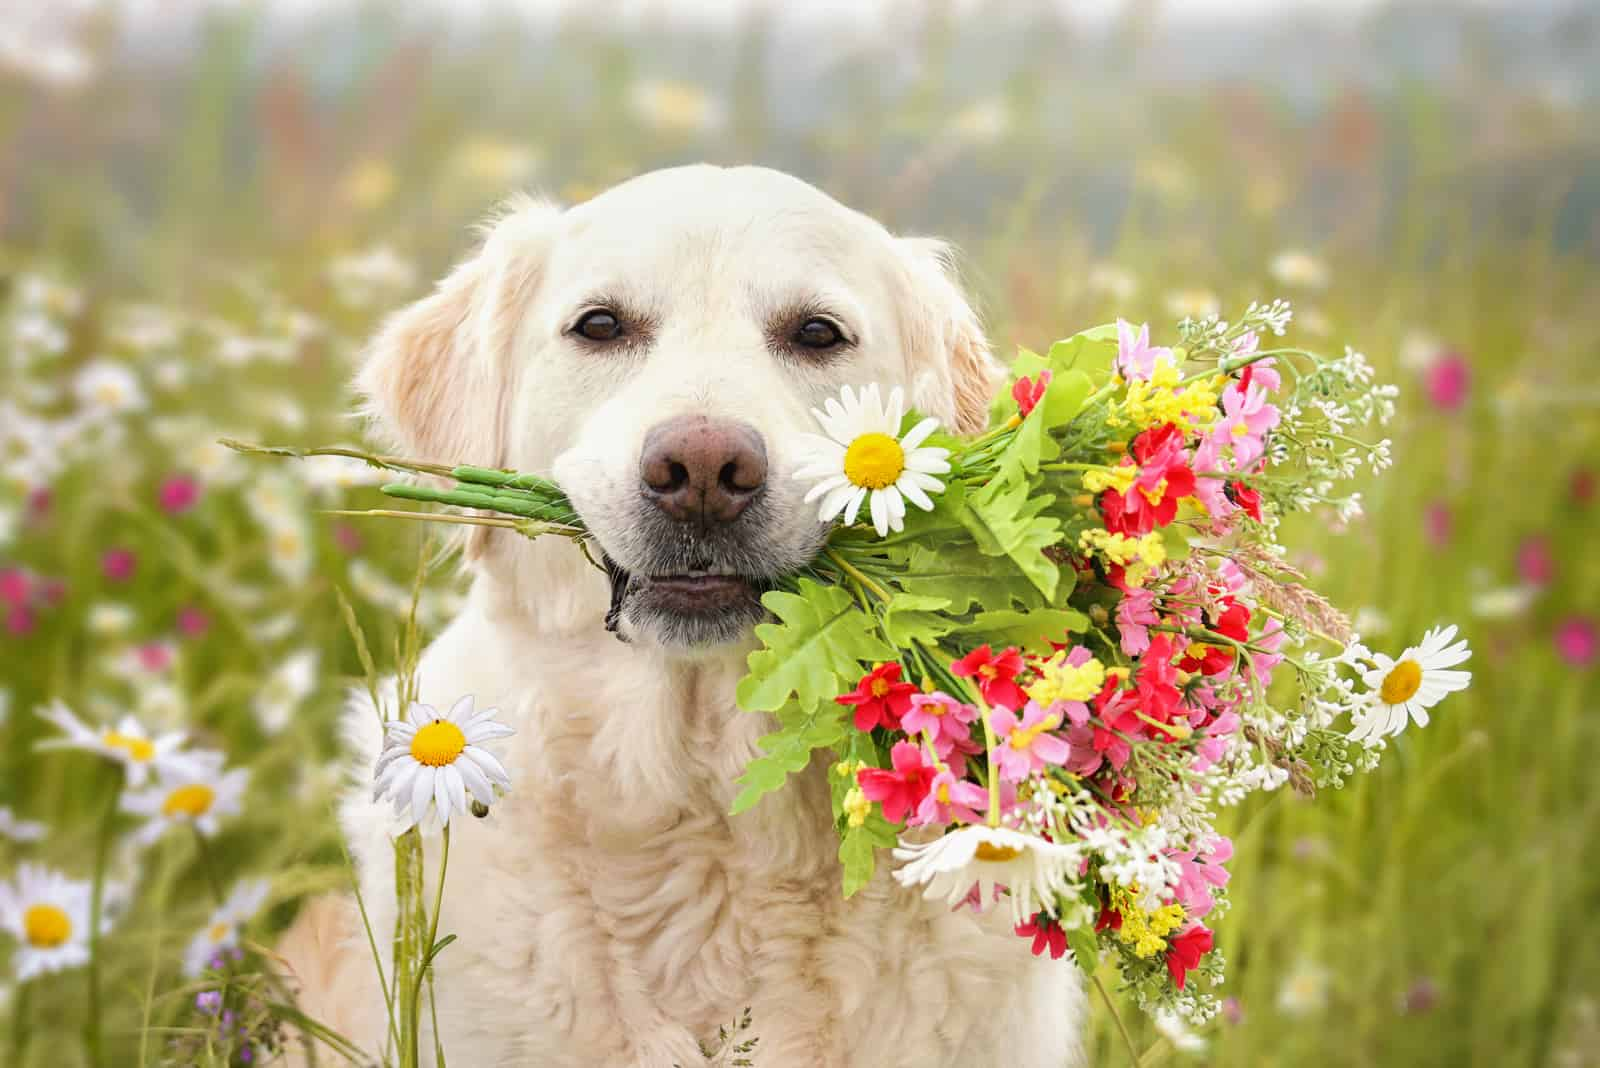 Dog sitting with flowers in the mouth in a meadow